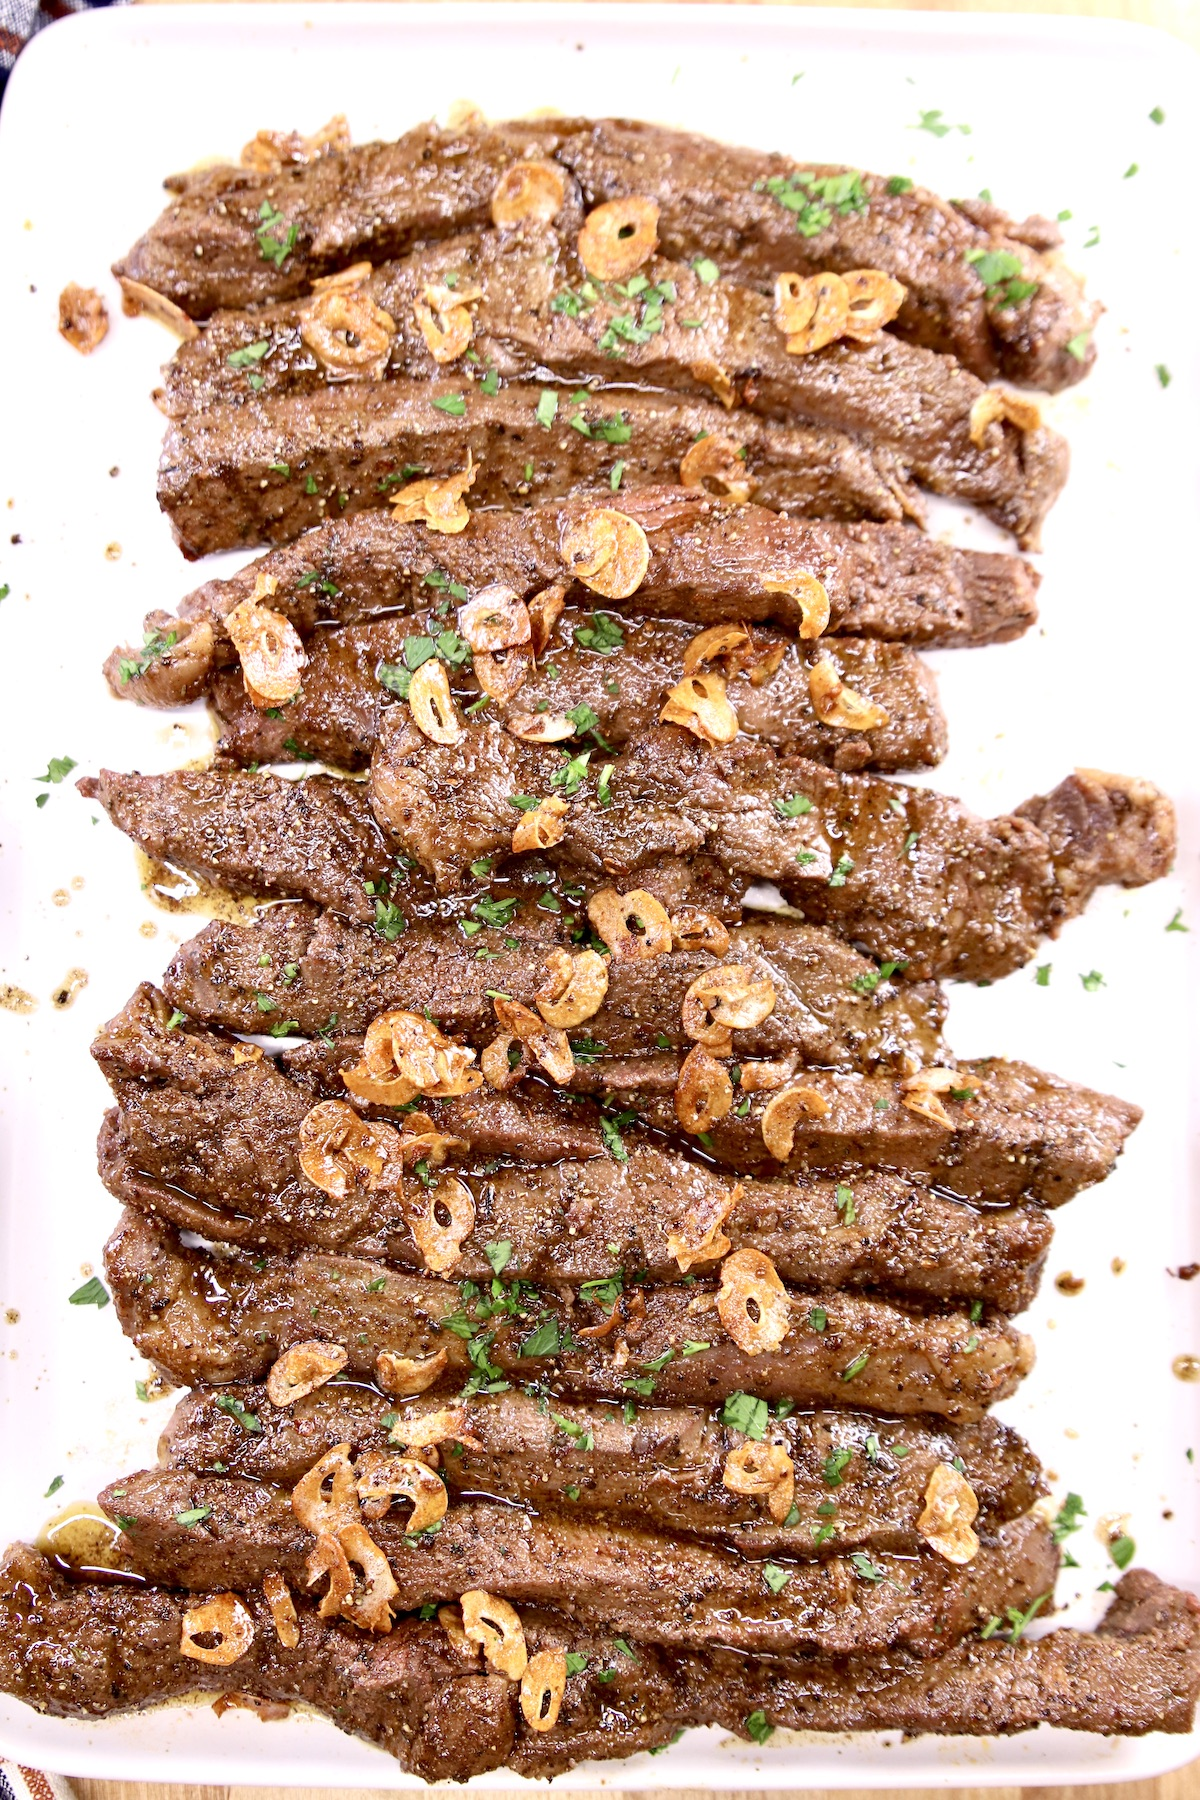 steak tips with parsley and garlic chips